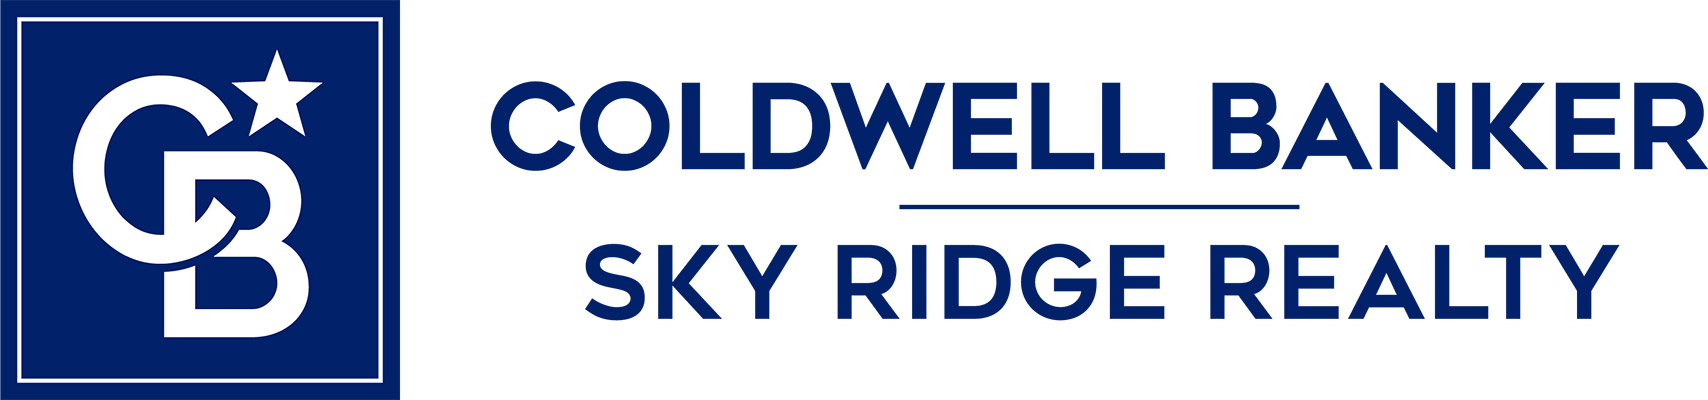 Cary McGeough - Coldwell Banker Sky Ridge Realty